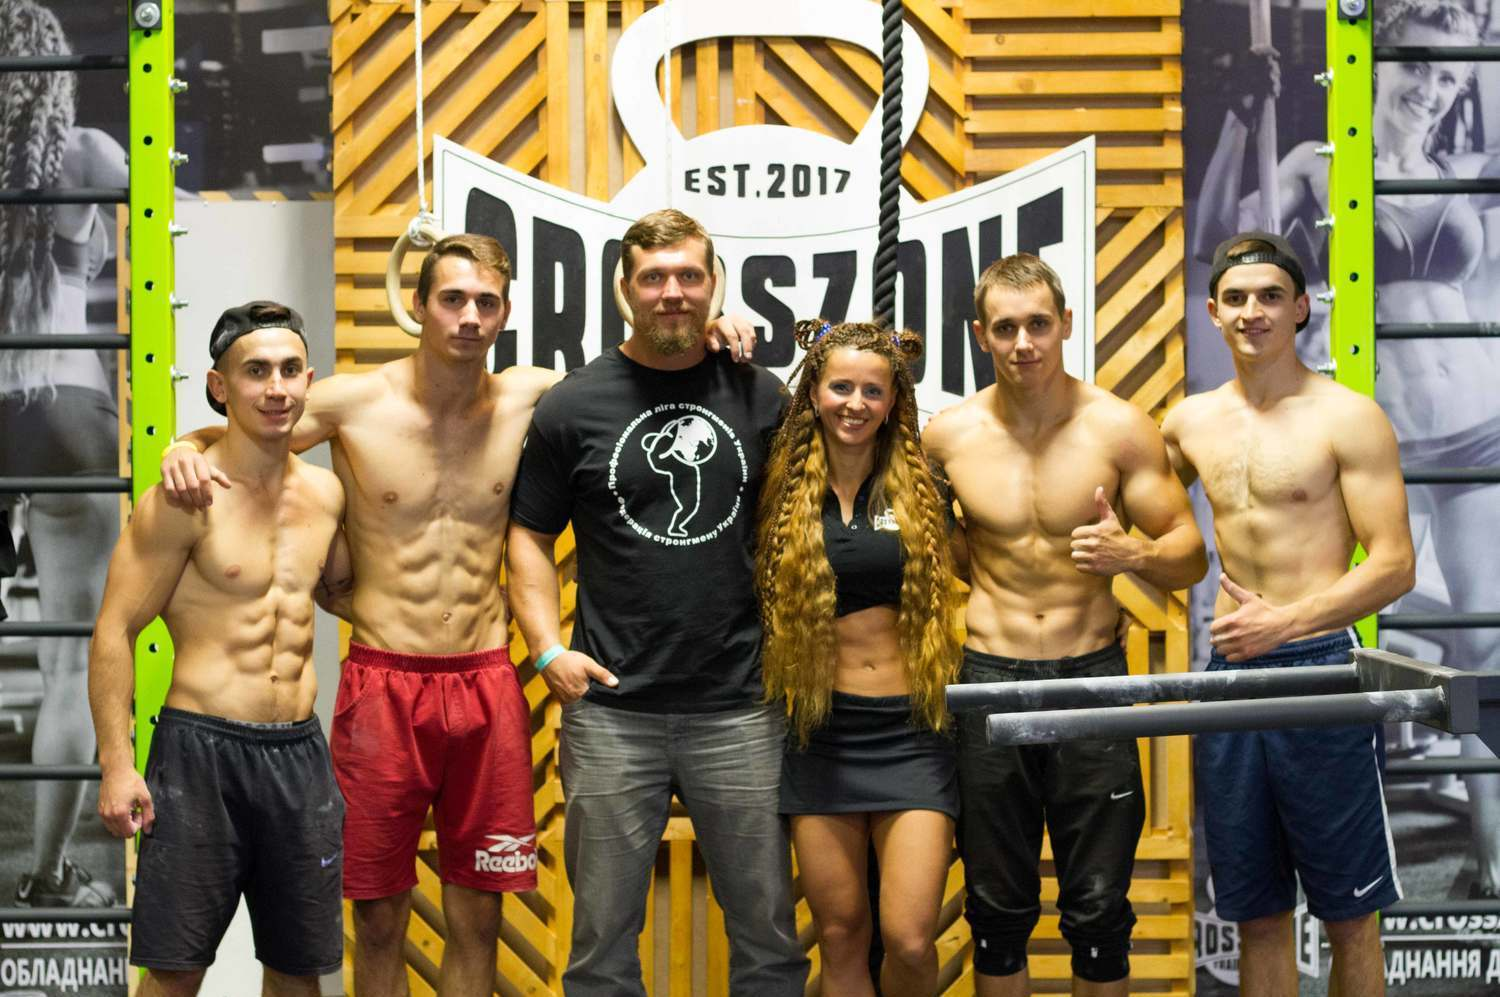 LVIV FITNESS WIKEND 2017